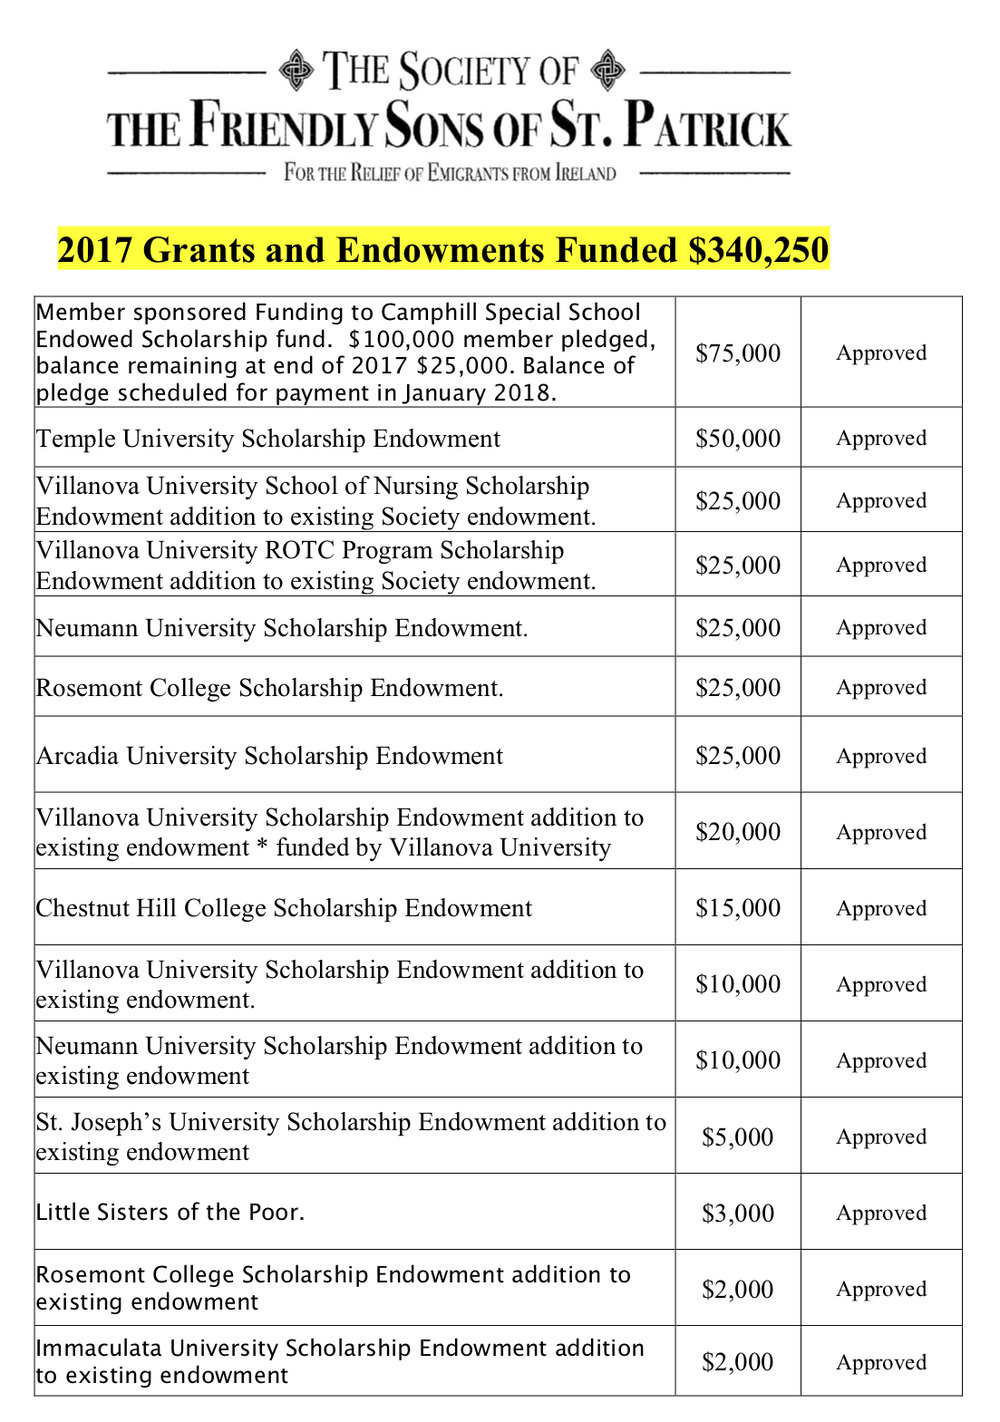 Approved 2017 FSSP Grants  & Endowments 1.jpg